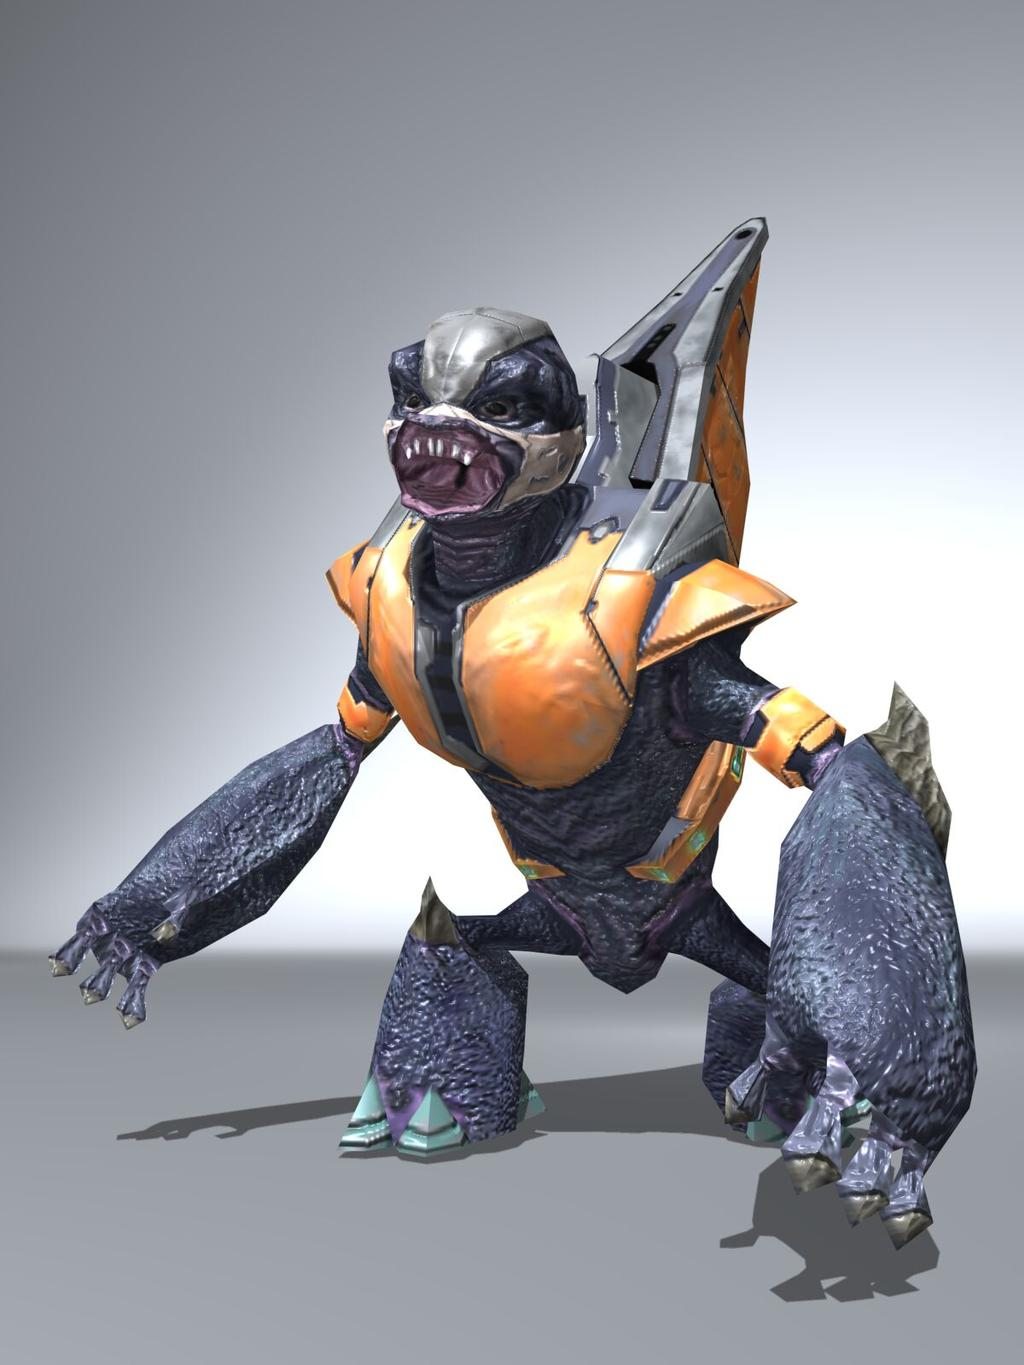 3D Grunt Model I'm Working On | Halo Costume and Prop Maker